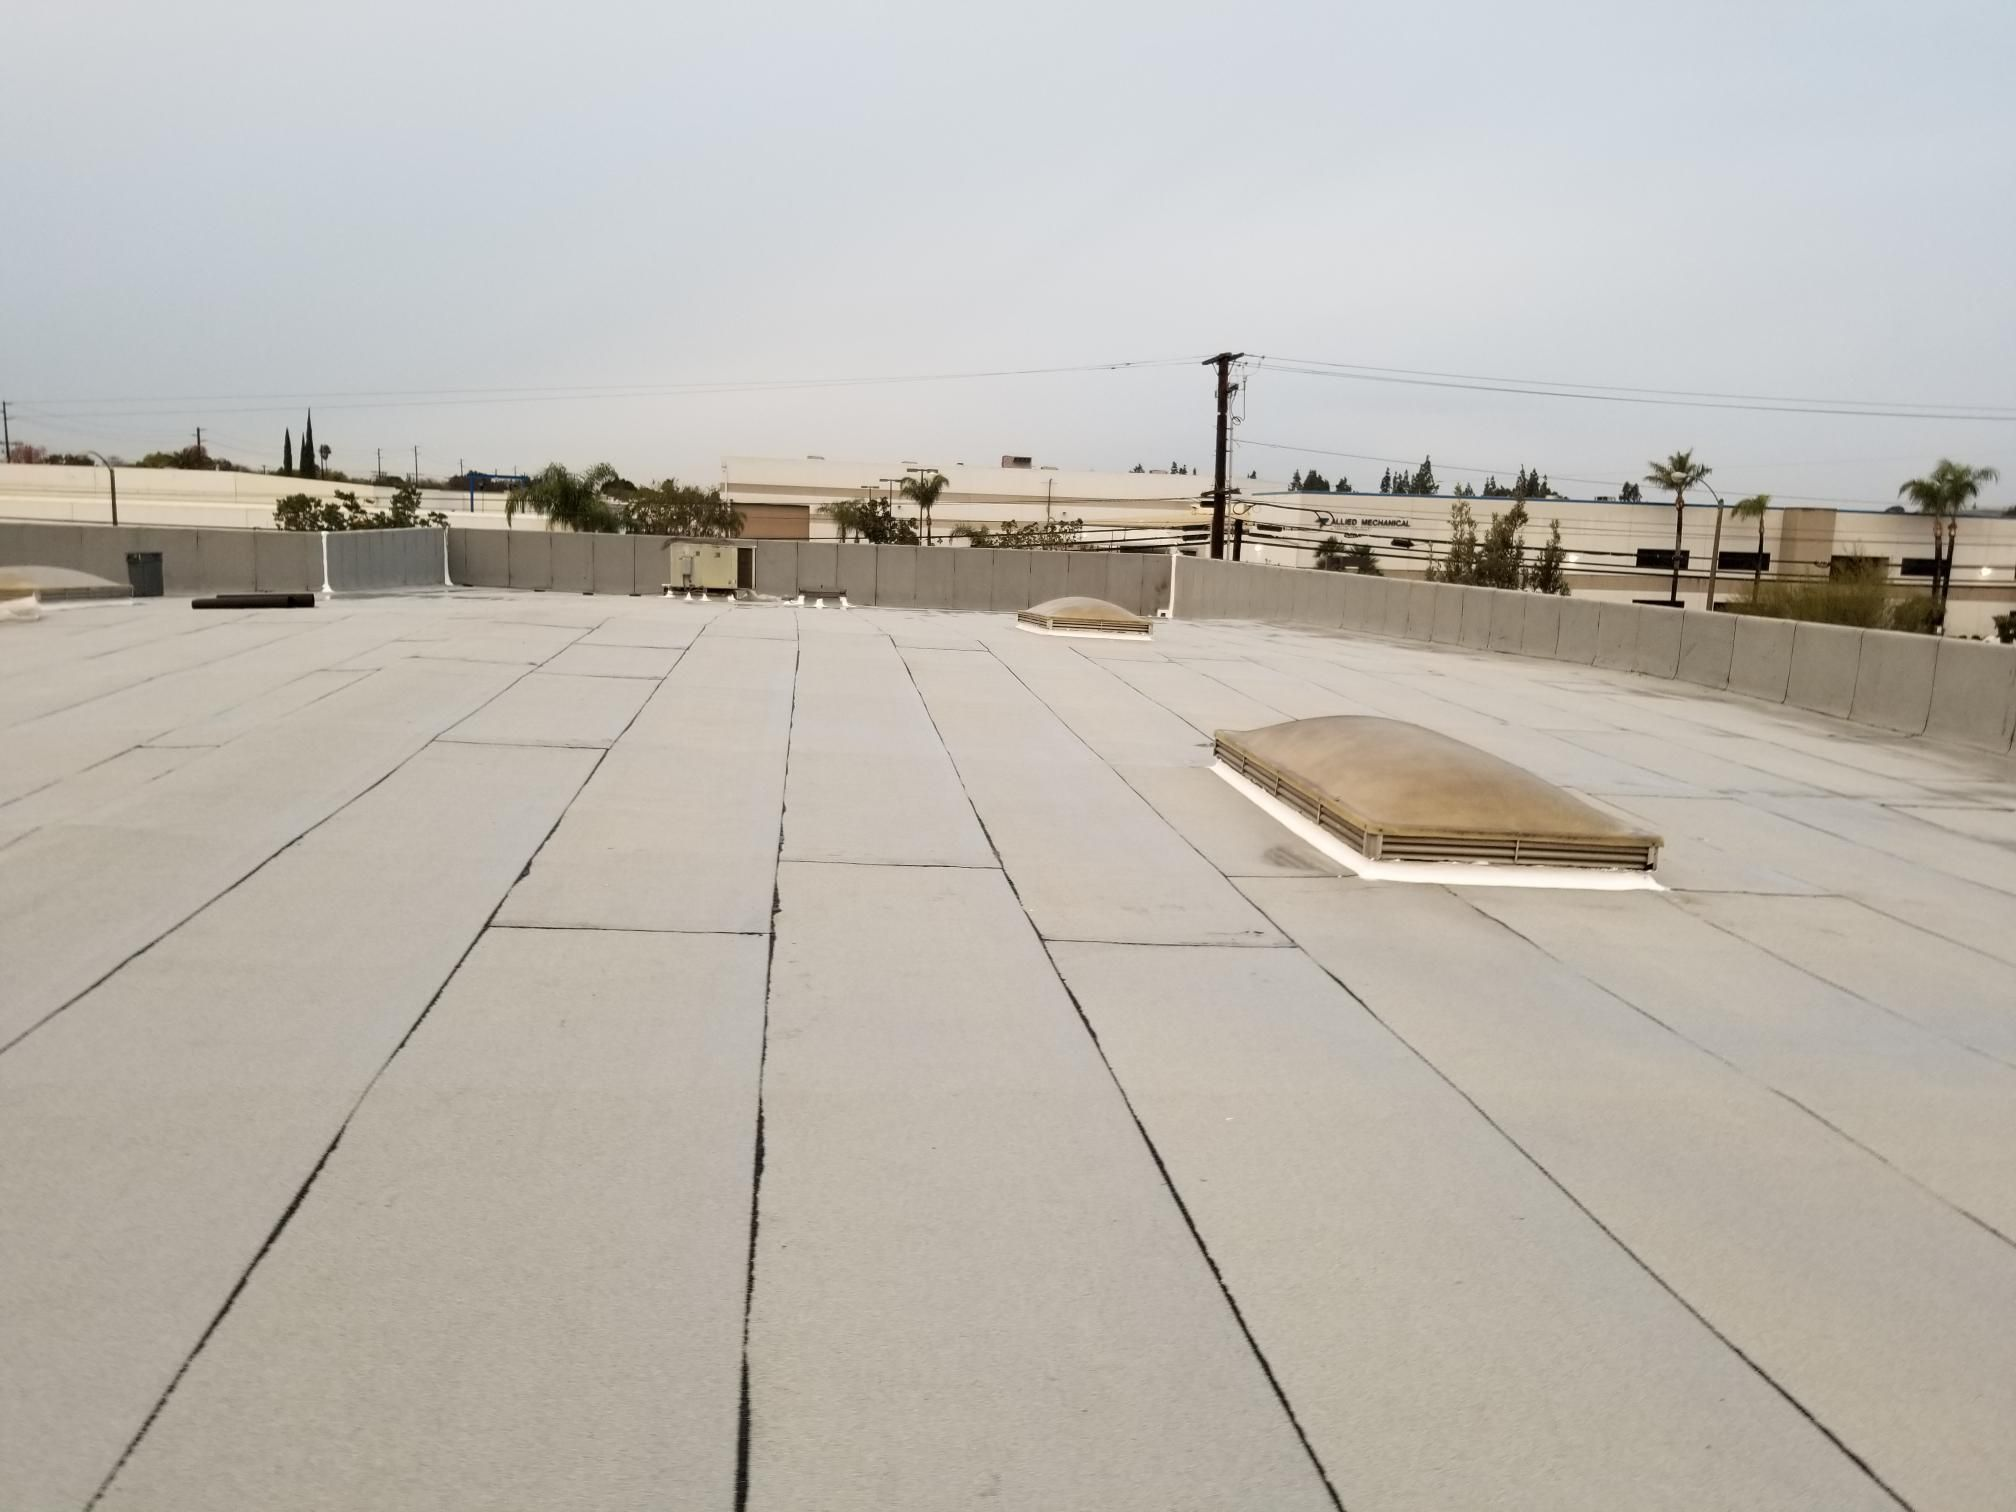 Bestway Roofing Los Angeles Ca Is One Of The Best Roofing Services To Provide You The Higher Quality Of Roofing Services C Roofing Services Cool Roof Roofing